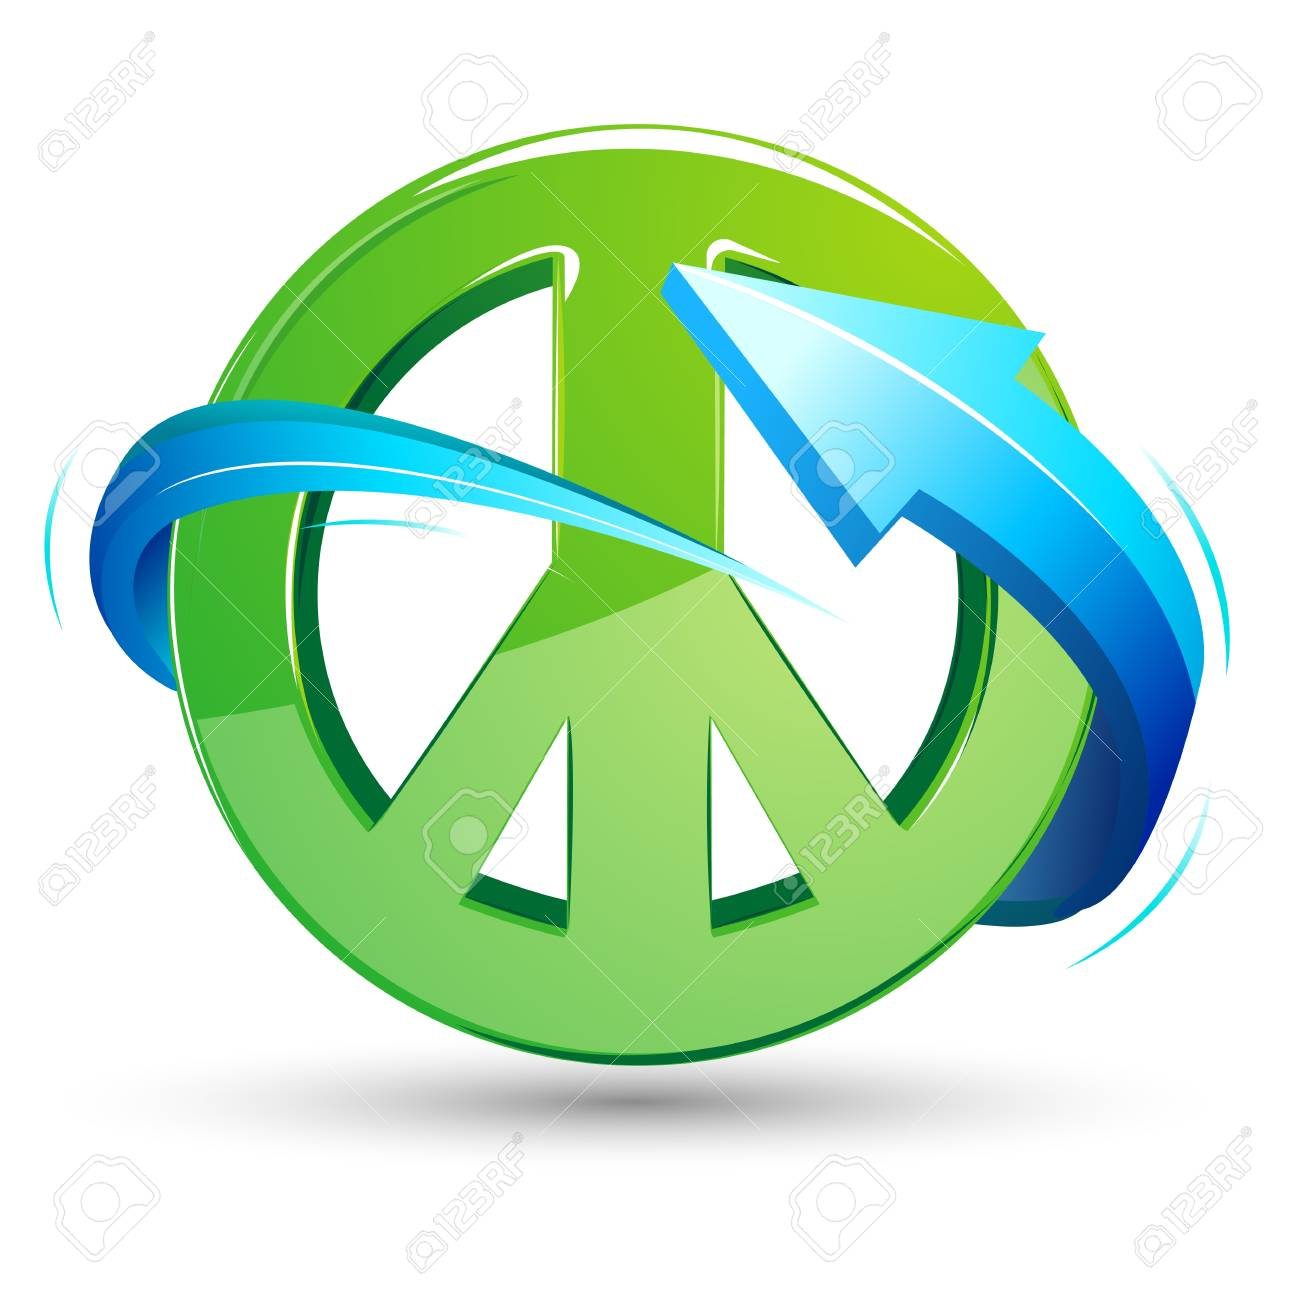 Illustration Of Peace Sign With Arrow Around On White Background